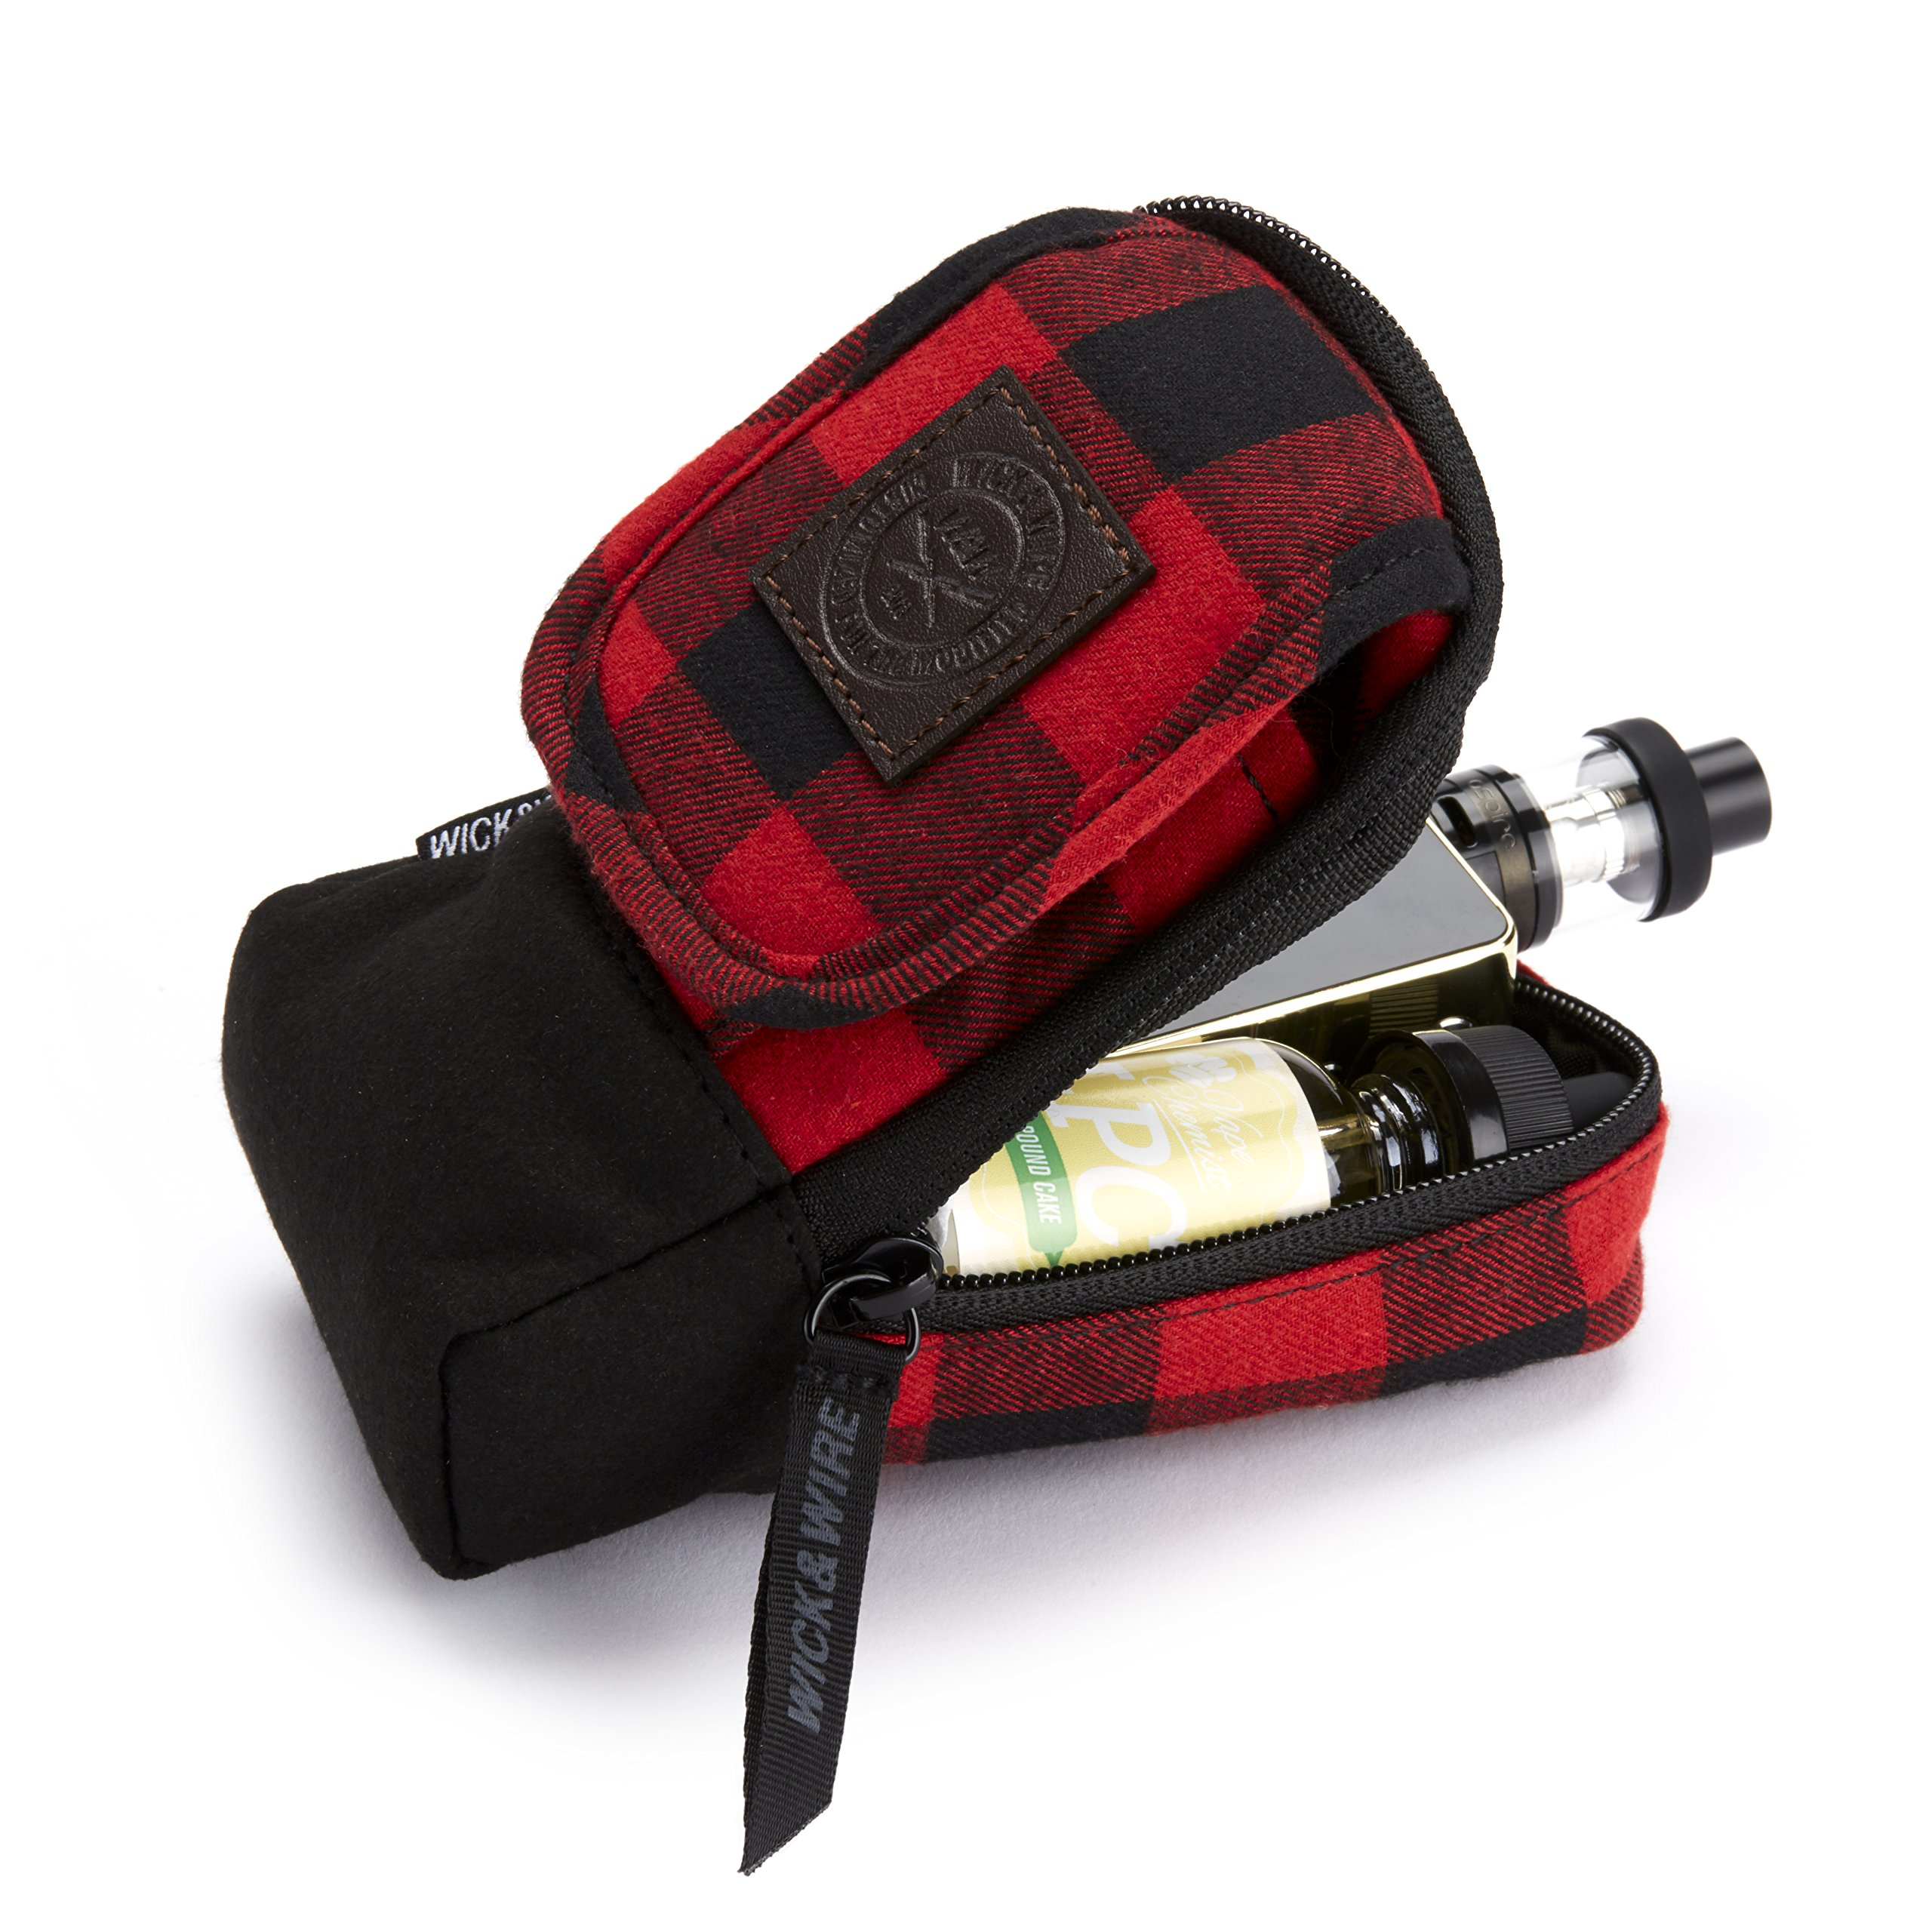 Vape Carrying Case for Travels - Secure, Organized, Premium Vape Bag - Fits Medium Mechanical Box Mods, e-Juice, Battery, Tank Holder & Accessories - Wick and Wire (Stash Red Plaid)